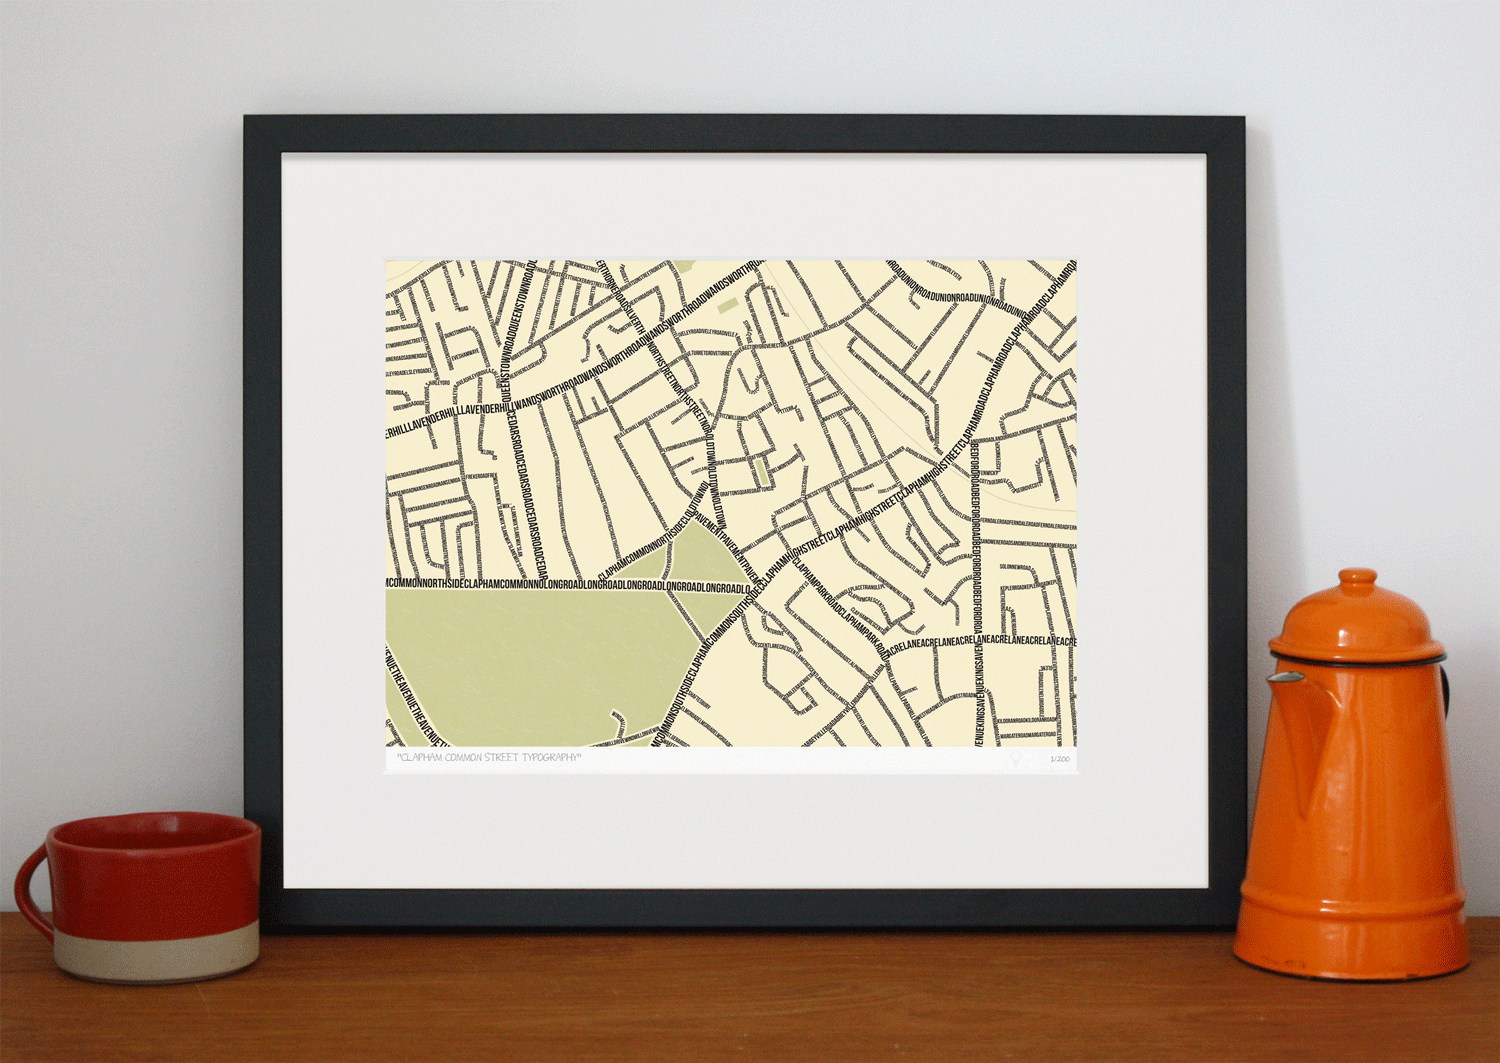 Place in Print South London Prints Clapham Common Street Typography Typographic Map Art Print Lifestyle